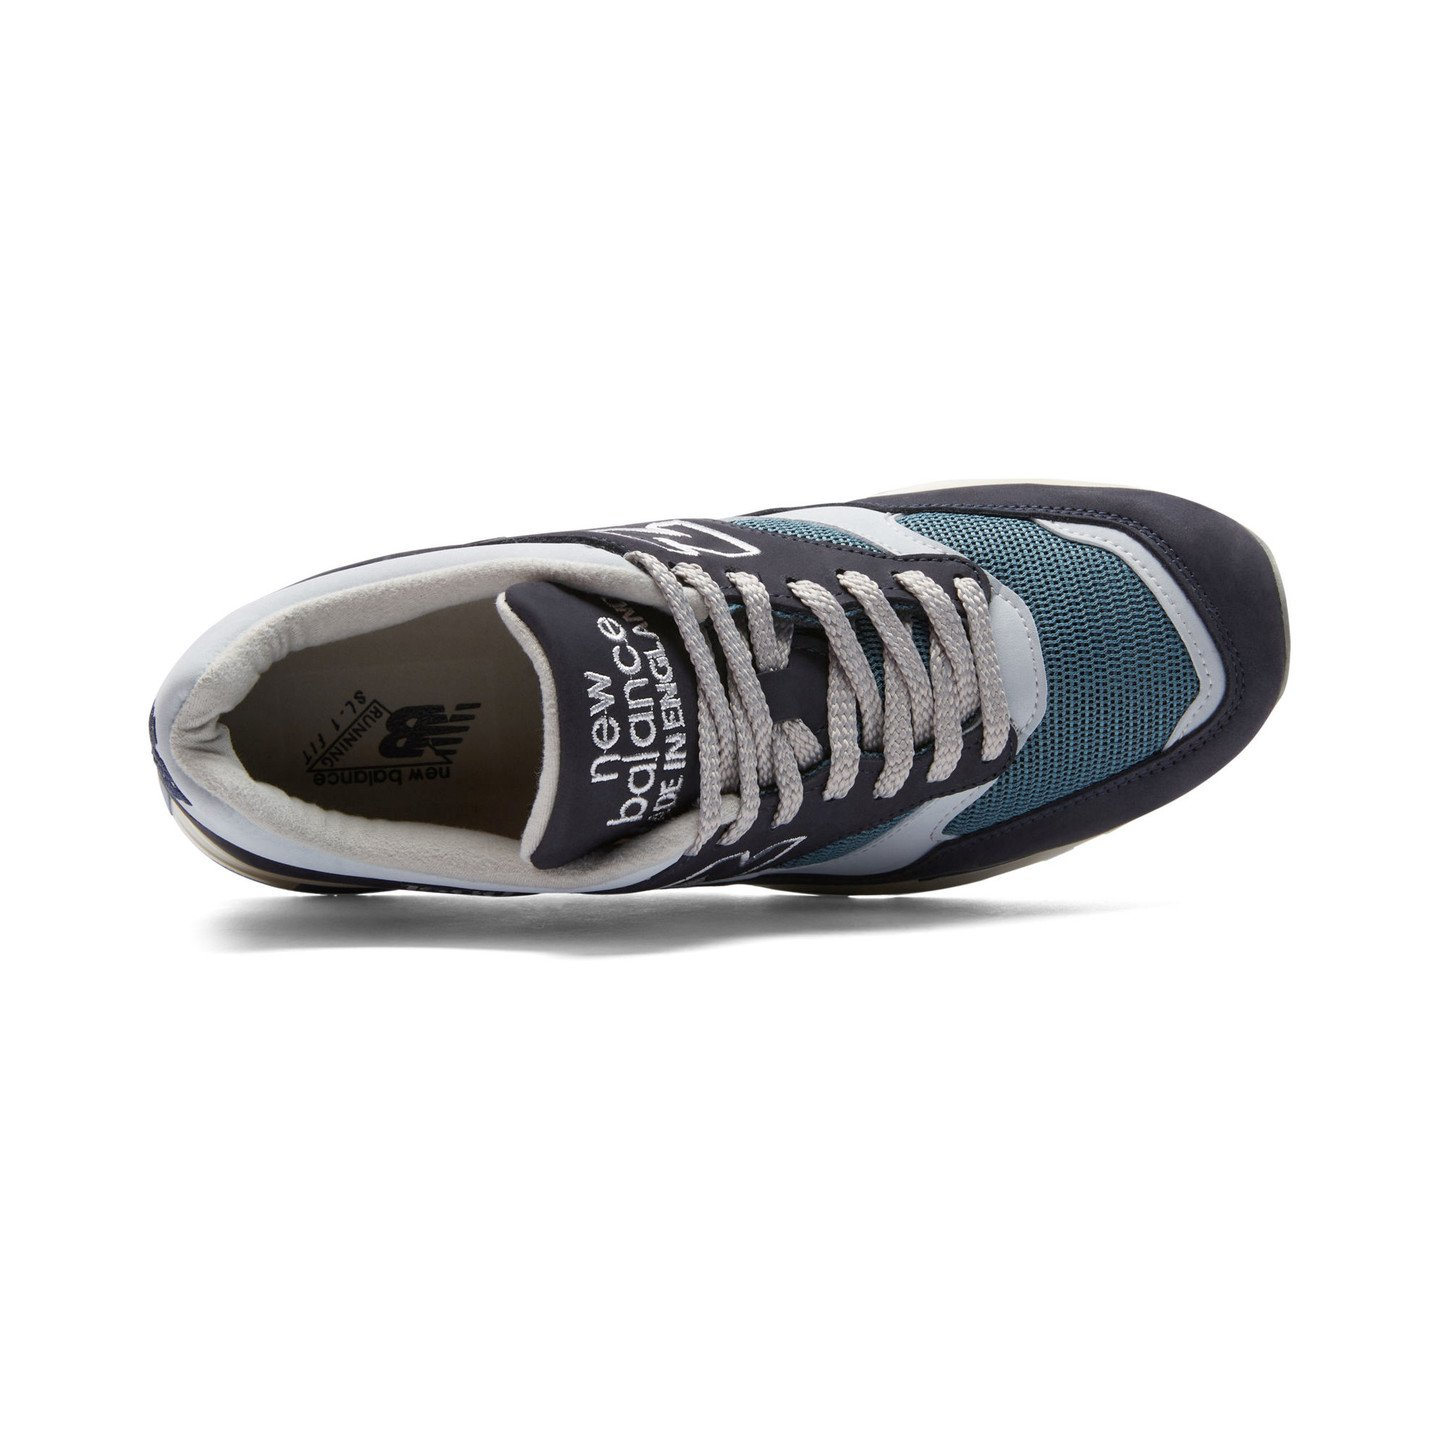 New Balance M1500 OGN - Made in England Navy / Grey M1500OGN